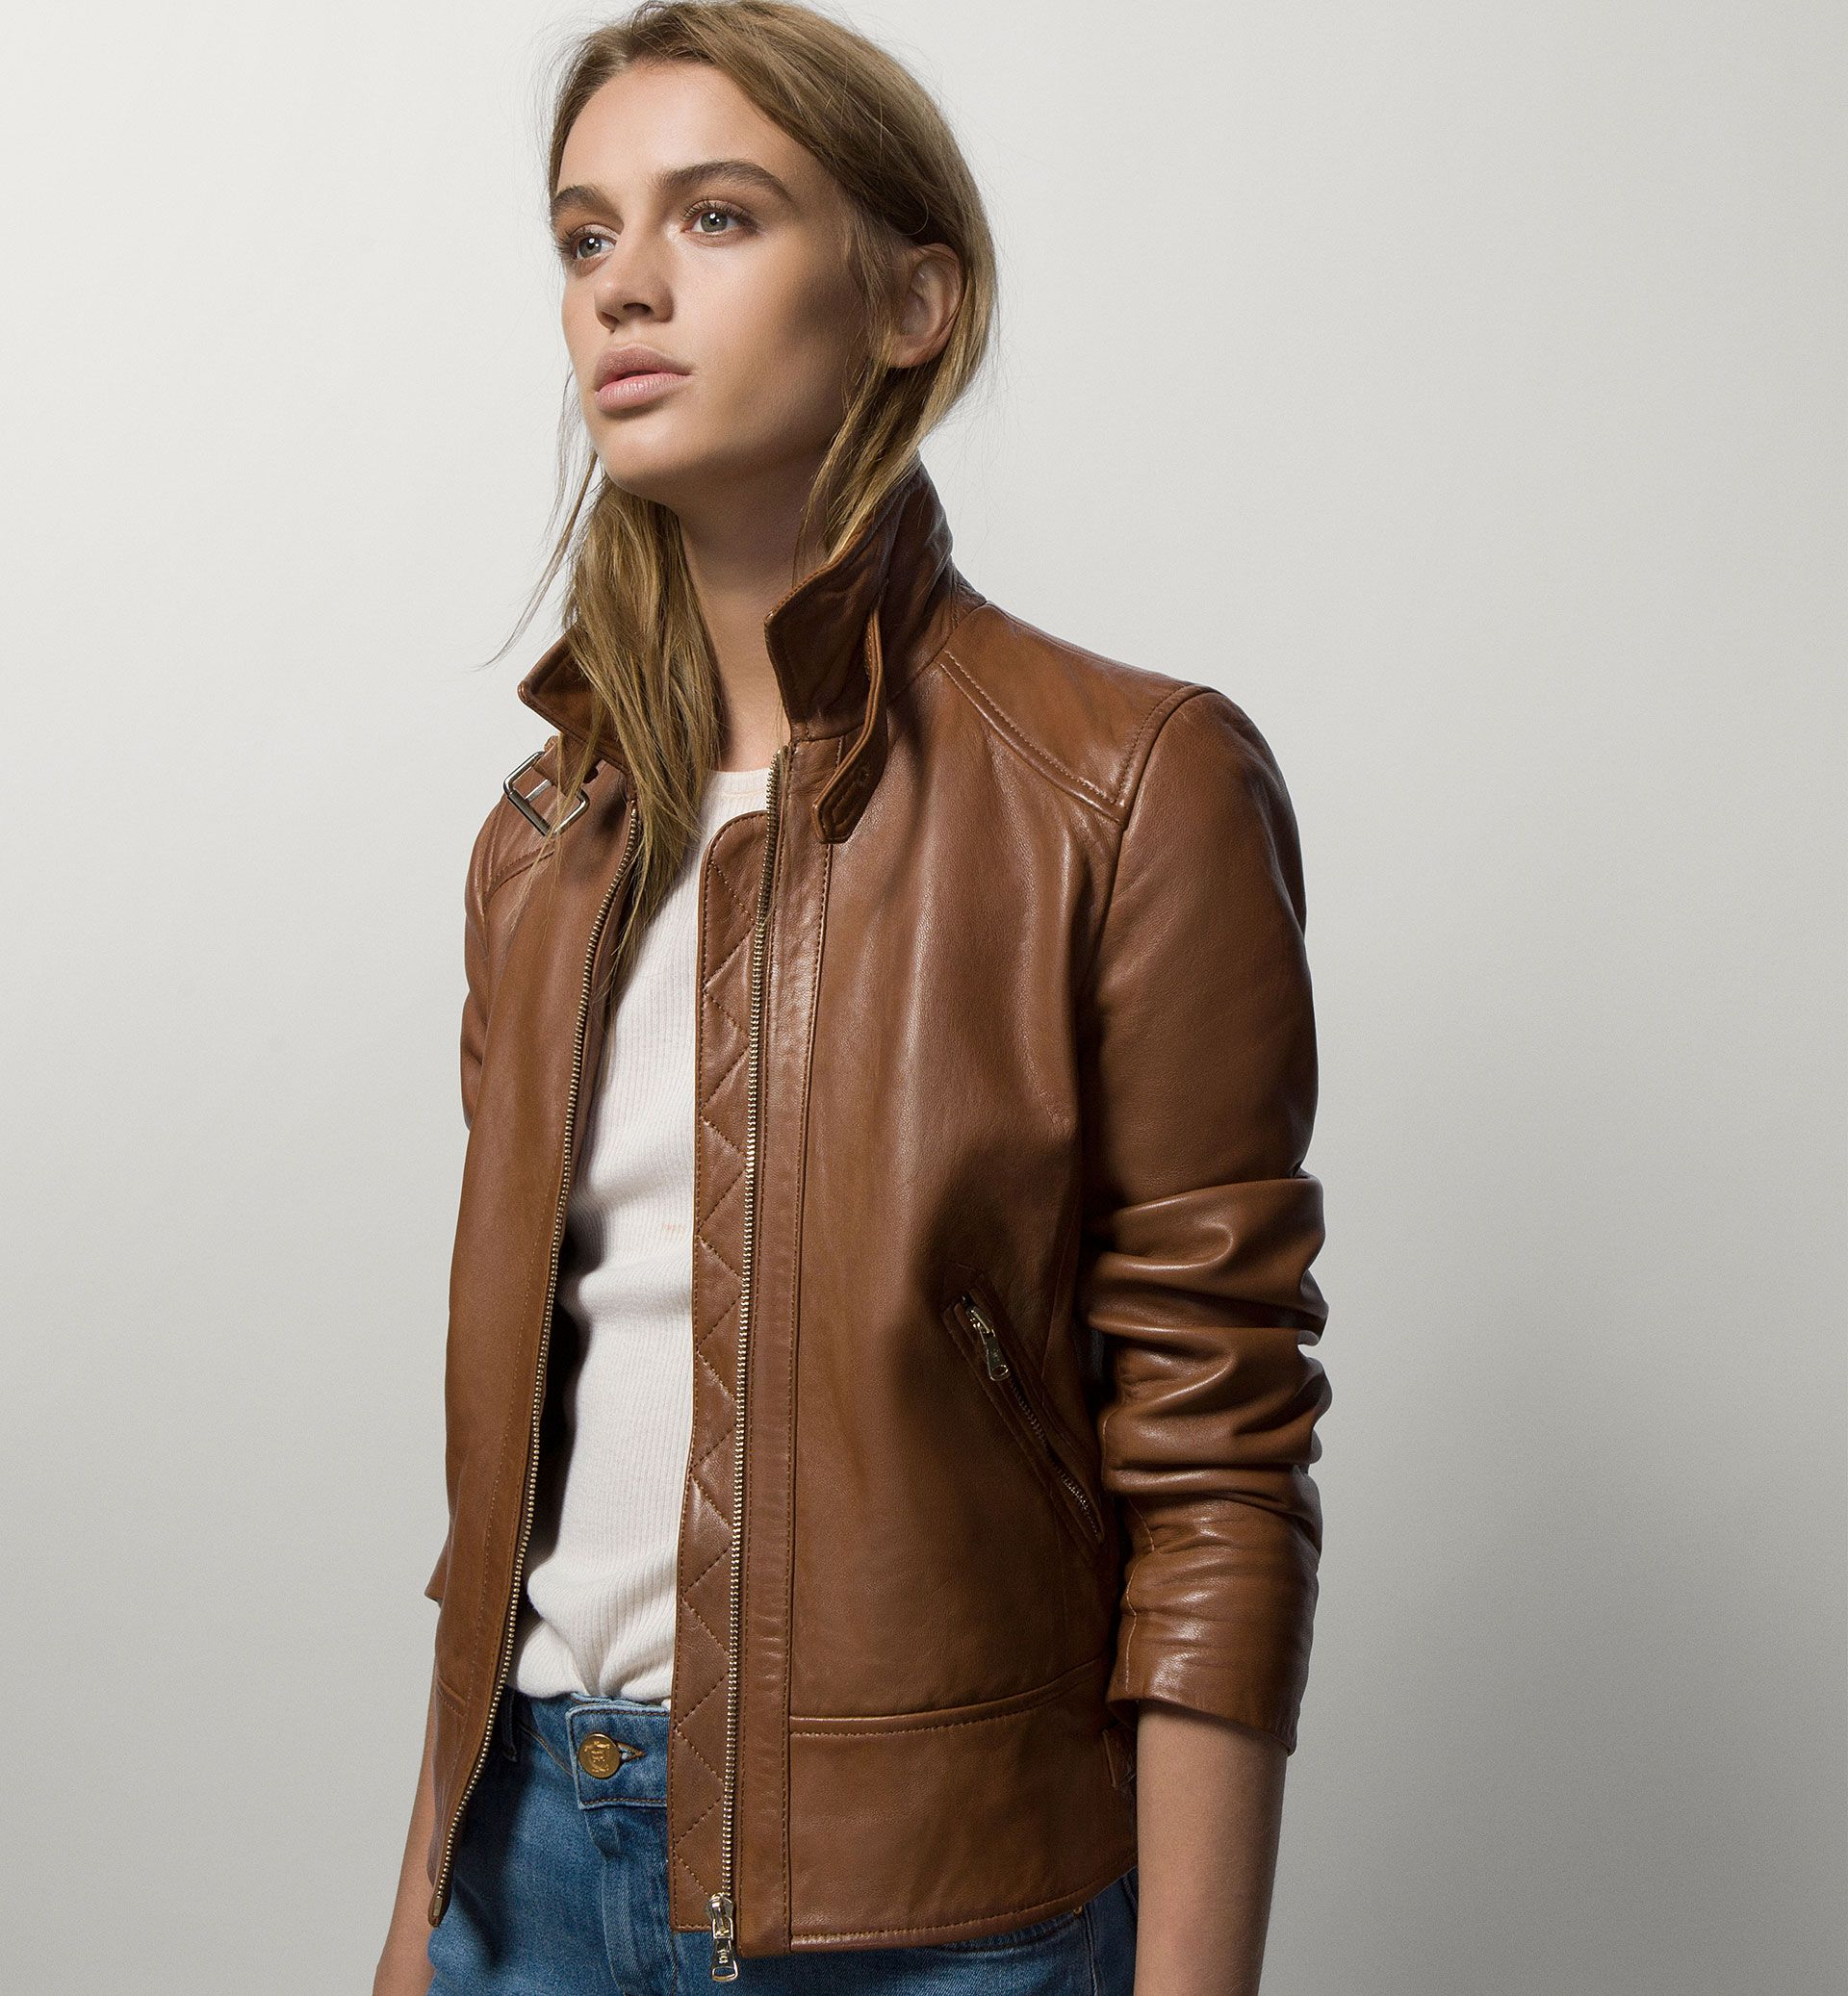 LEATHER JACKET WITH WORN SEAMS - if it came in black, though ...